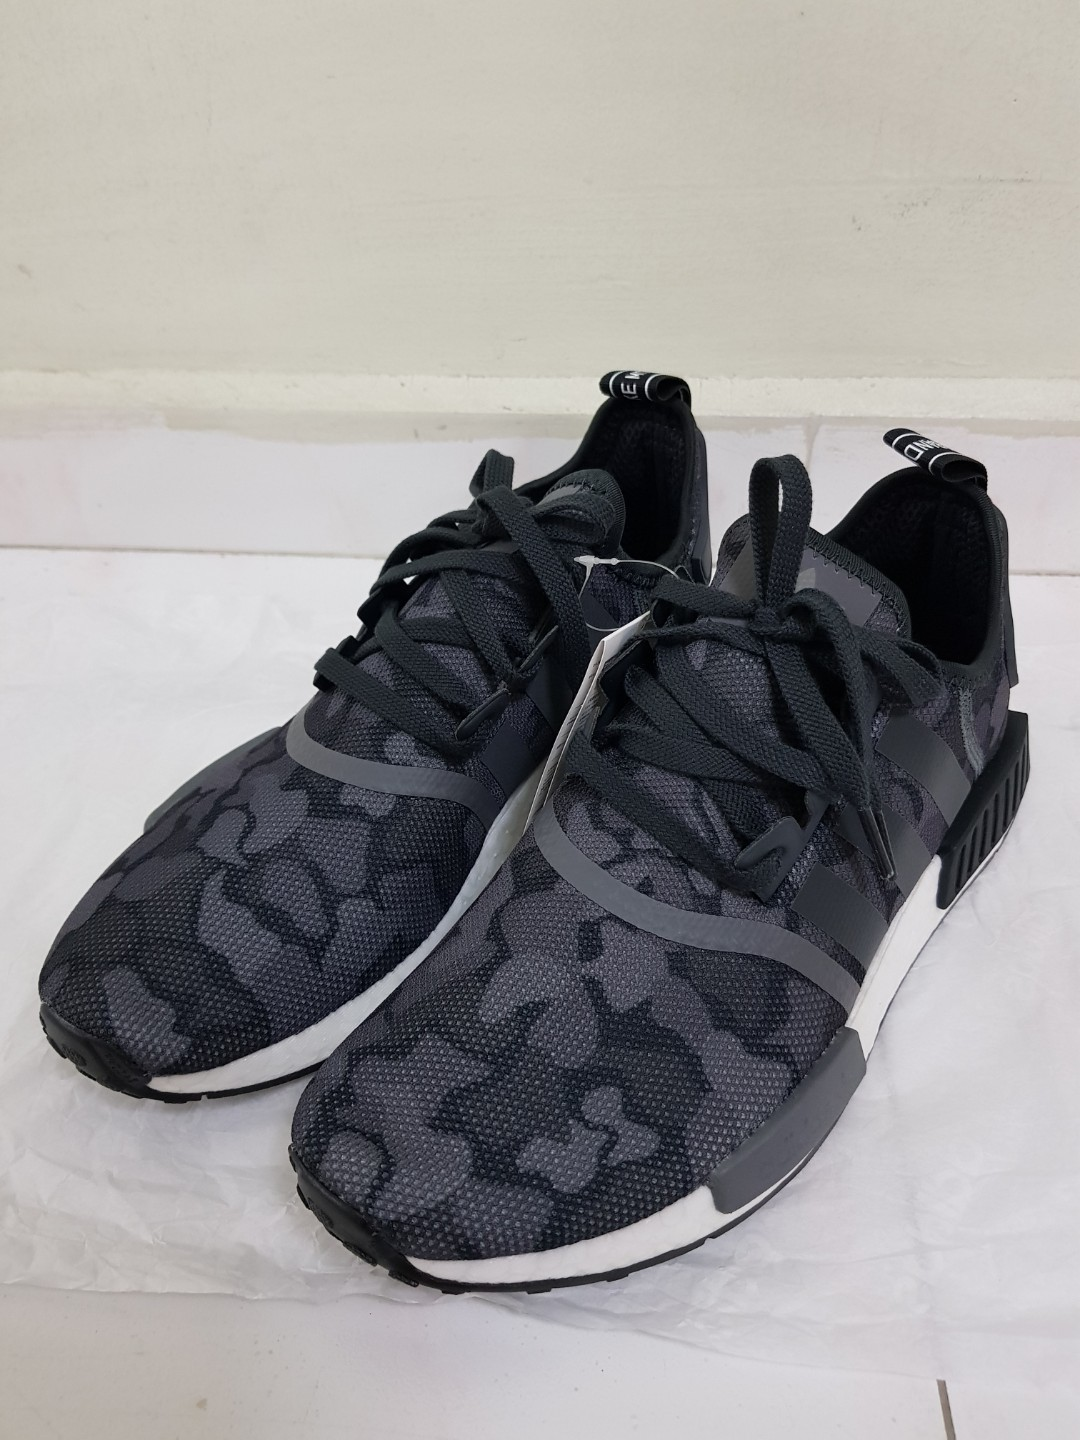 330734dc1 Adidas NMD R1 Black Camo for sale